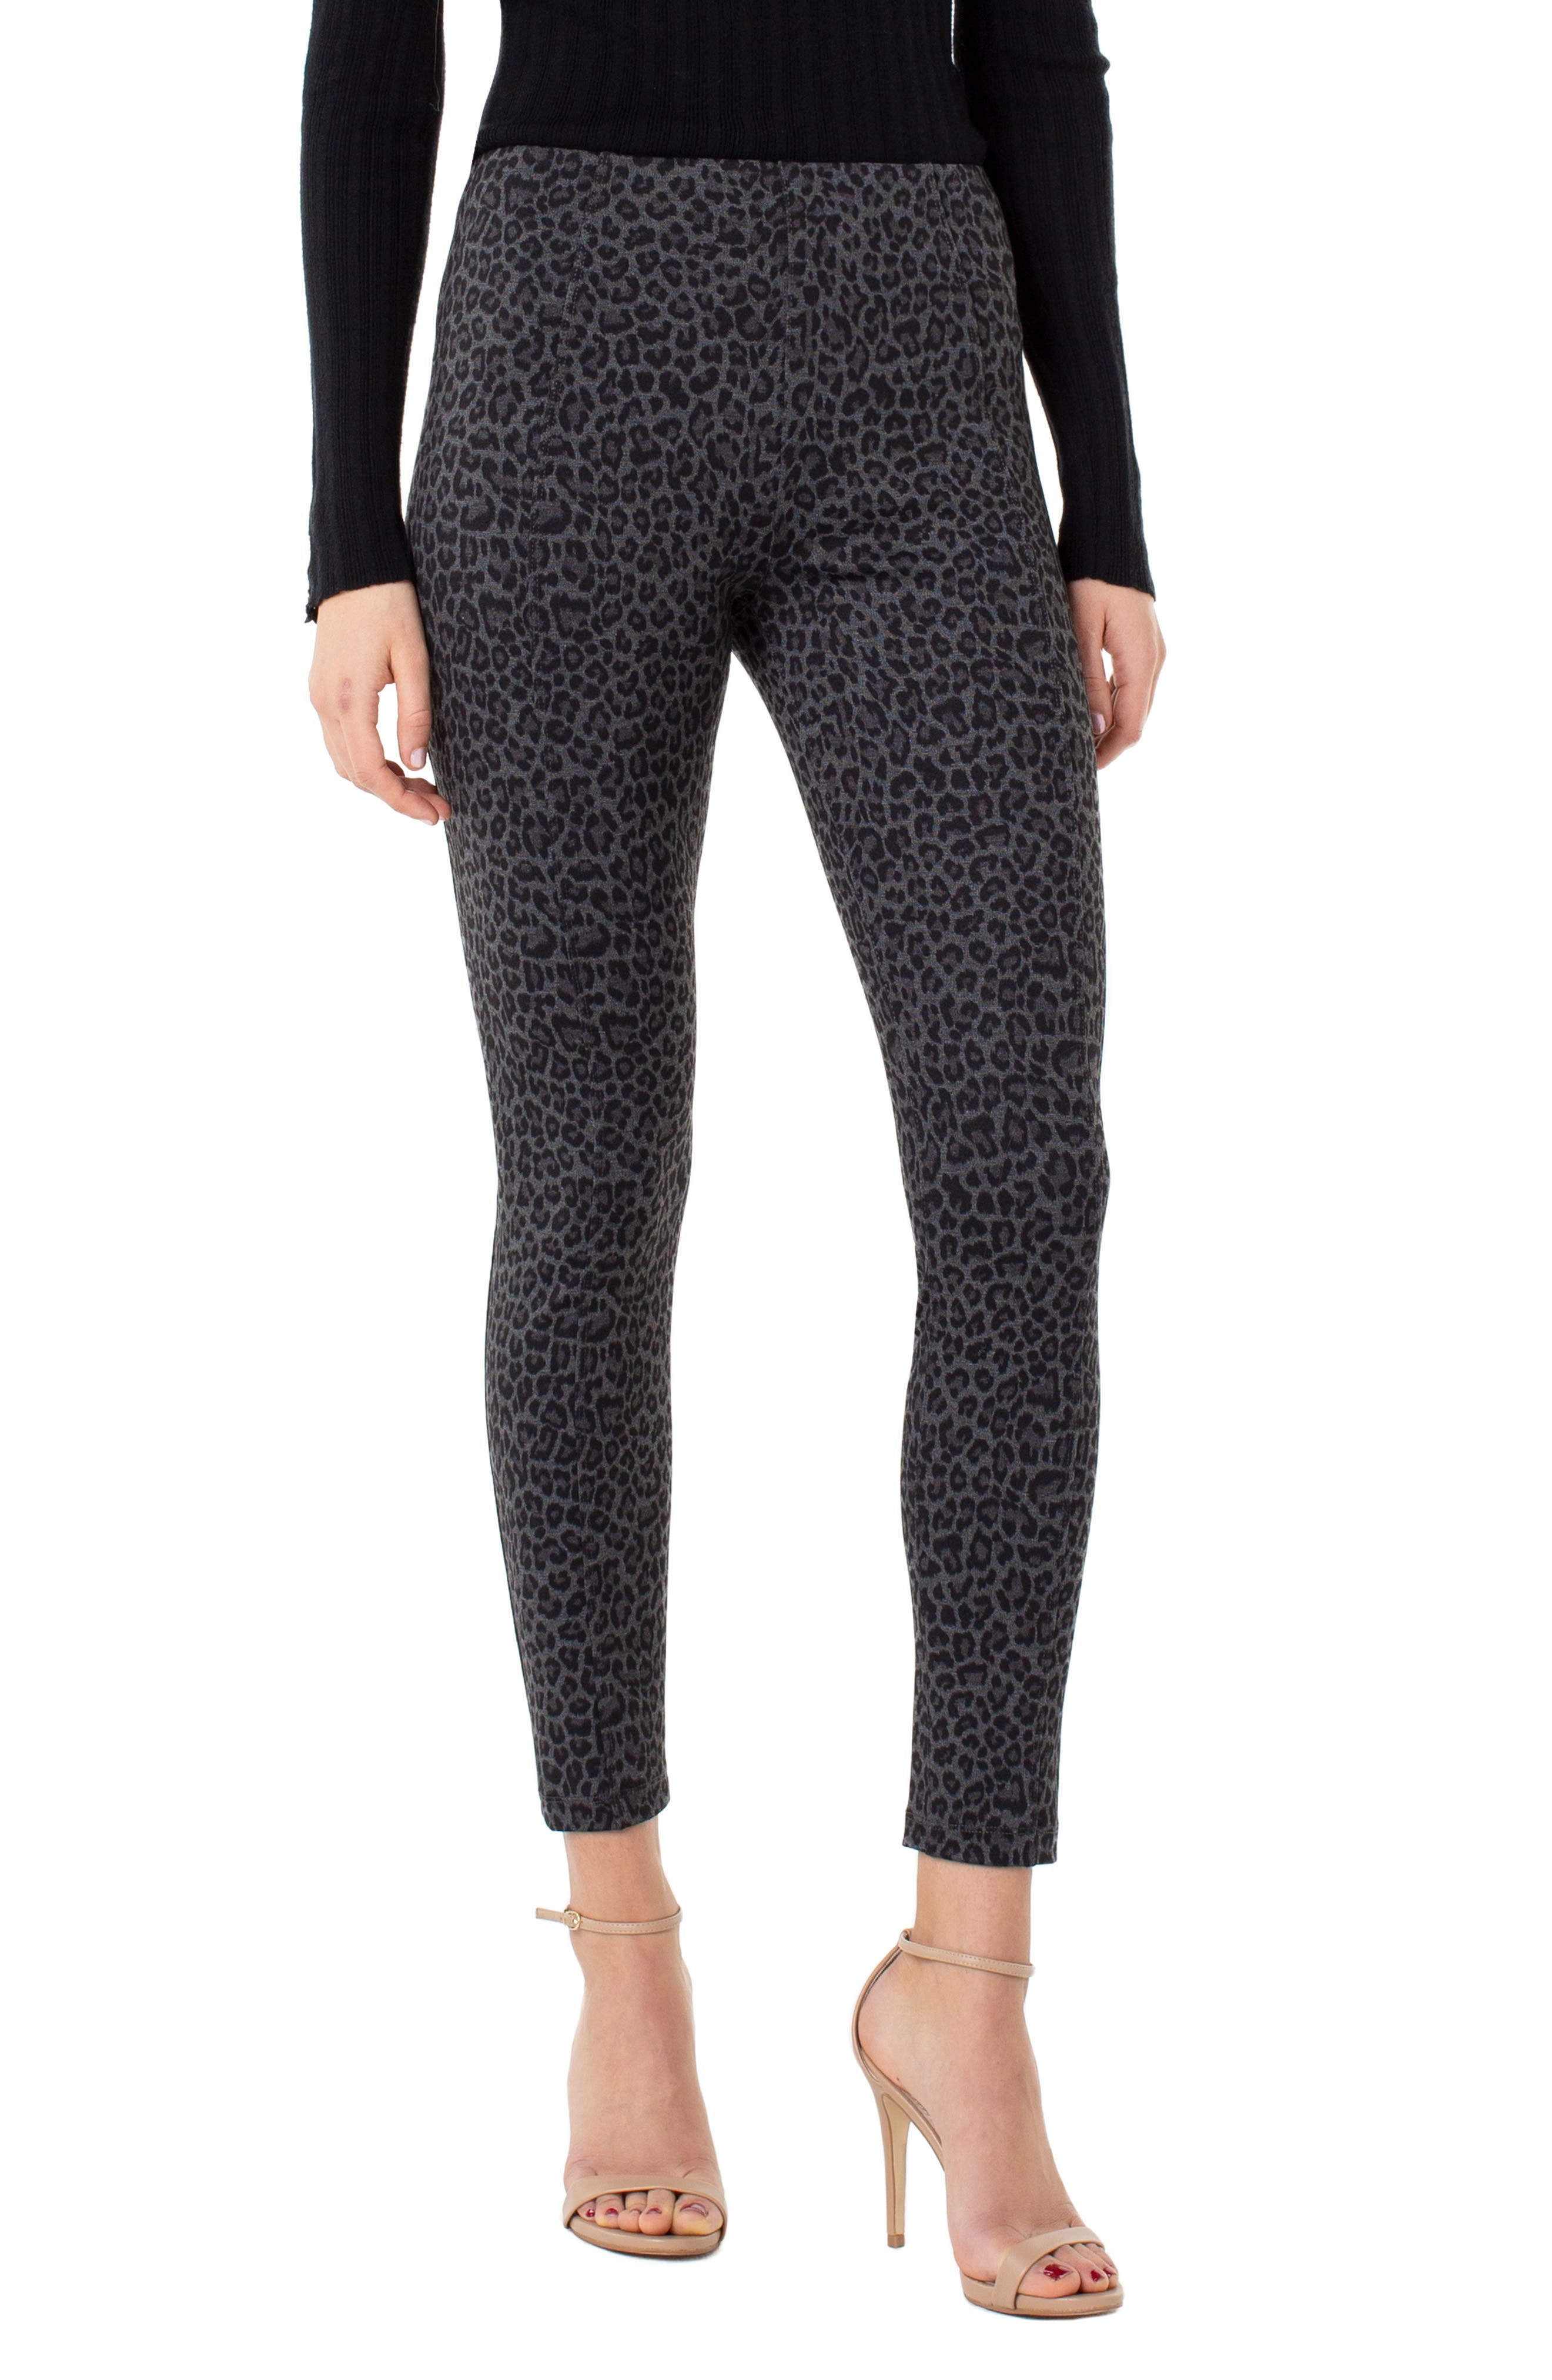 Reese Leopard Print Leggings by Liverpool